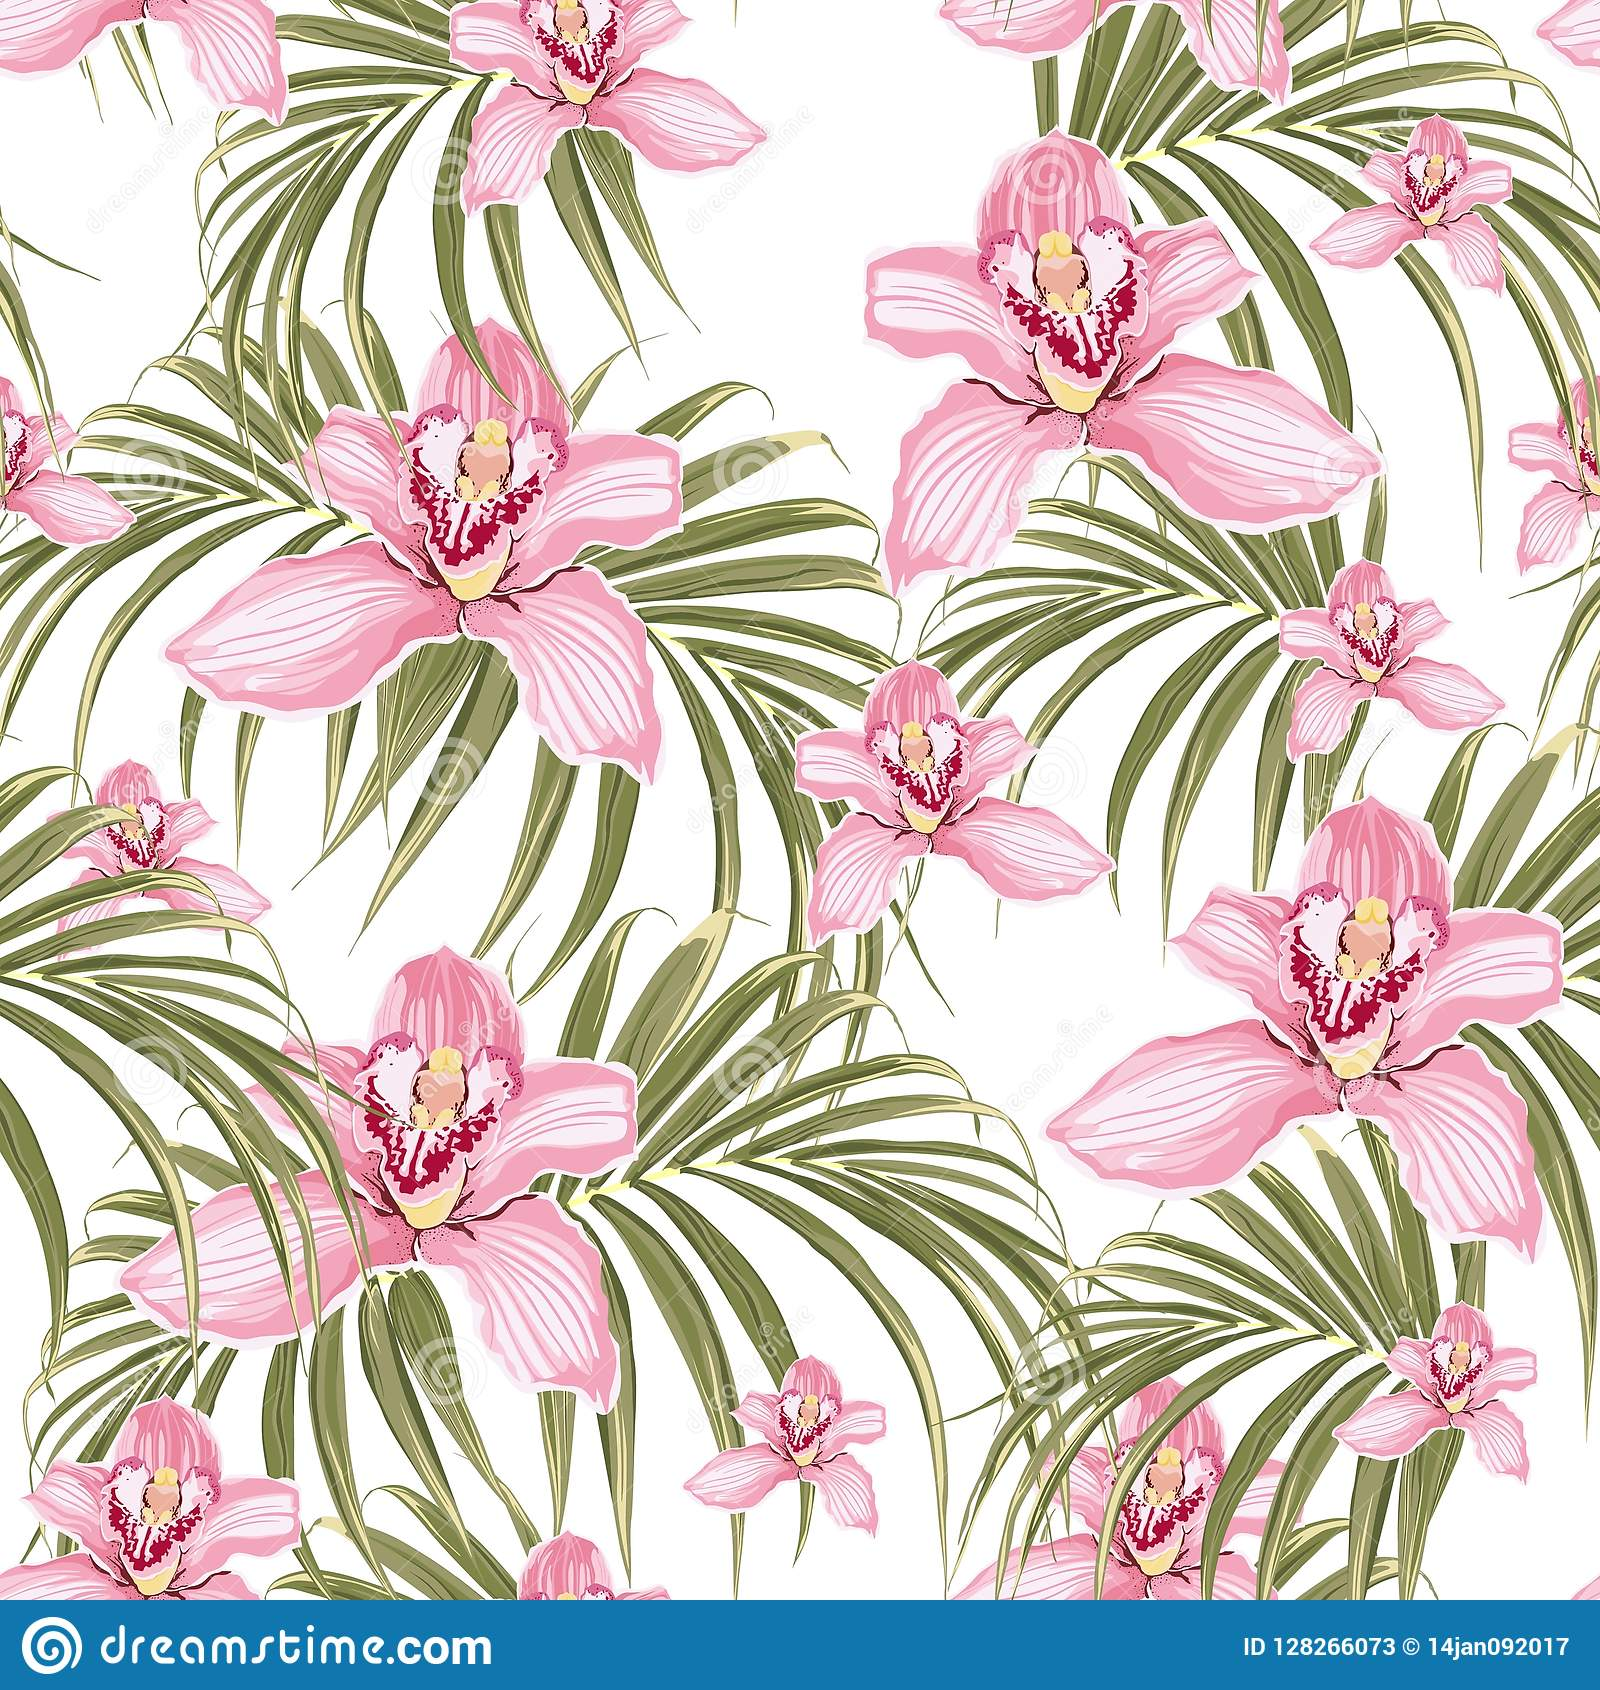 Seamless pattern of pink orchid flower and tropical palm leaves on white background.